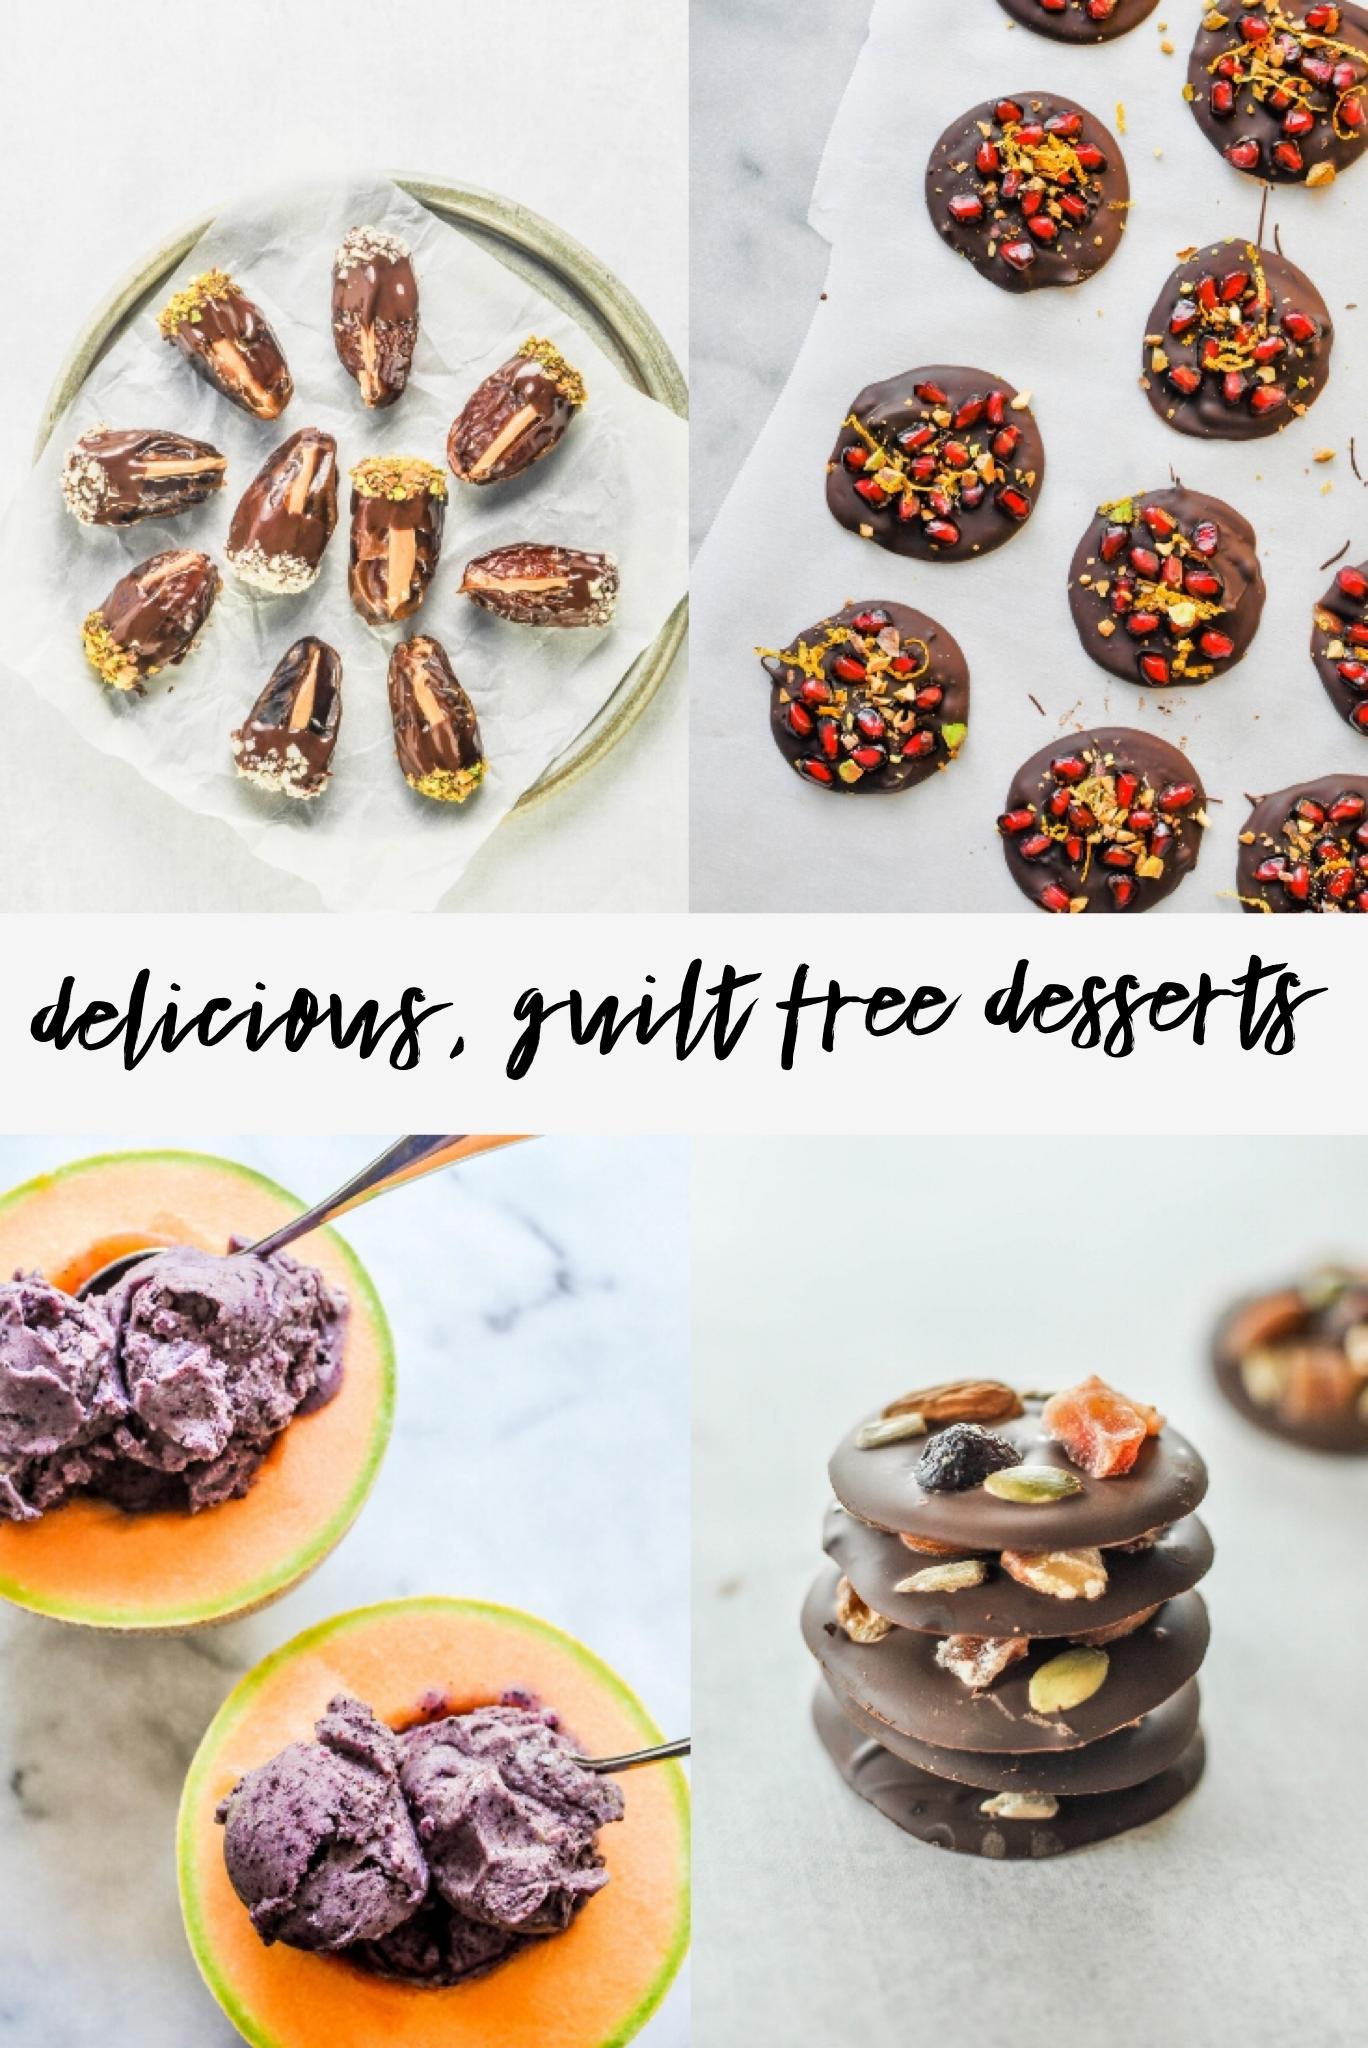 8 Guilt Free Desserts You'll Love! Enjoying something sweet or chocolatey doesn't have to wreck your healthy eating plan or give you an overwhelming sugar rush.